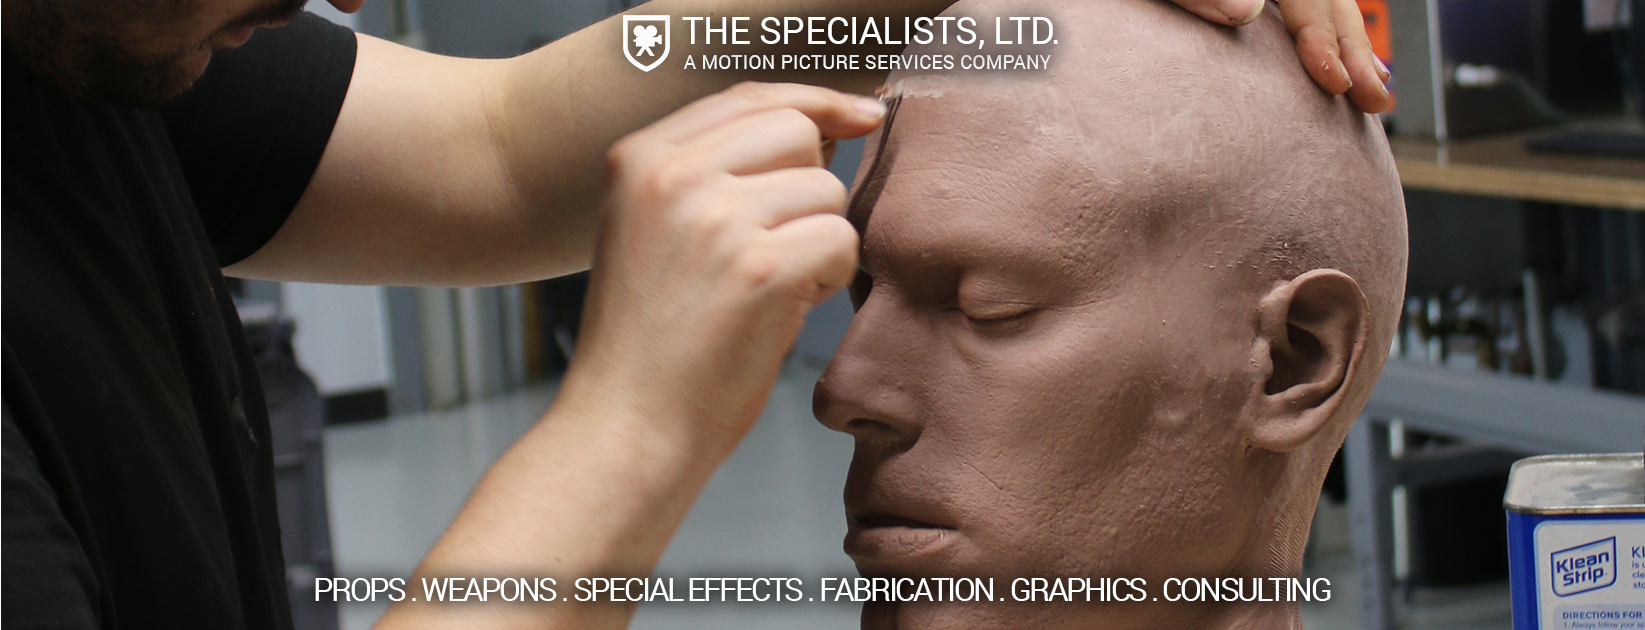 The Specialists, Ltd